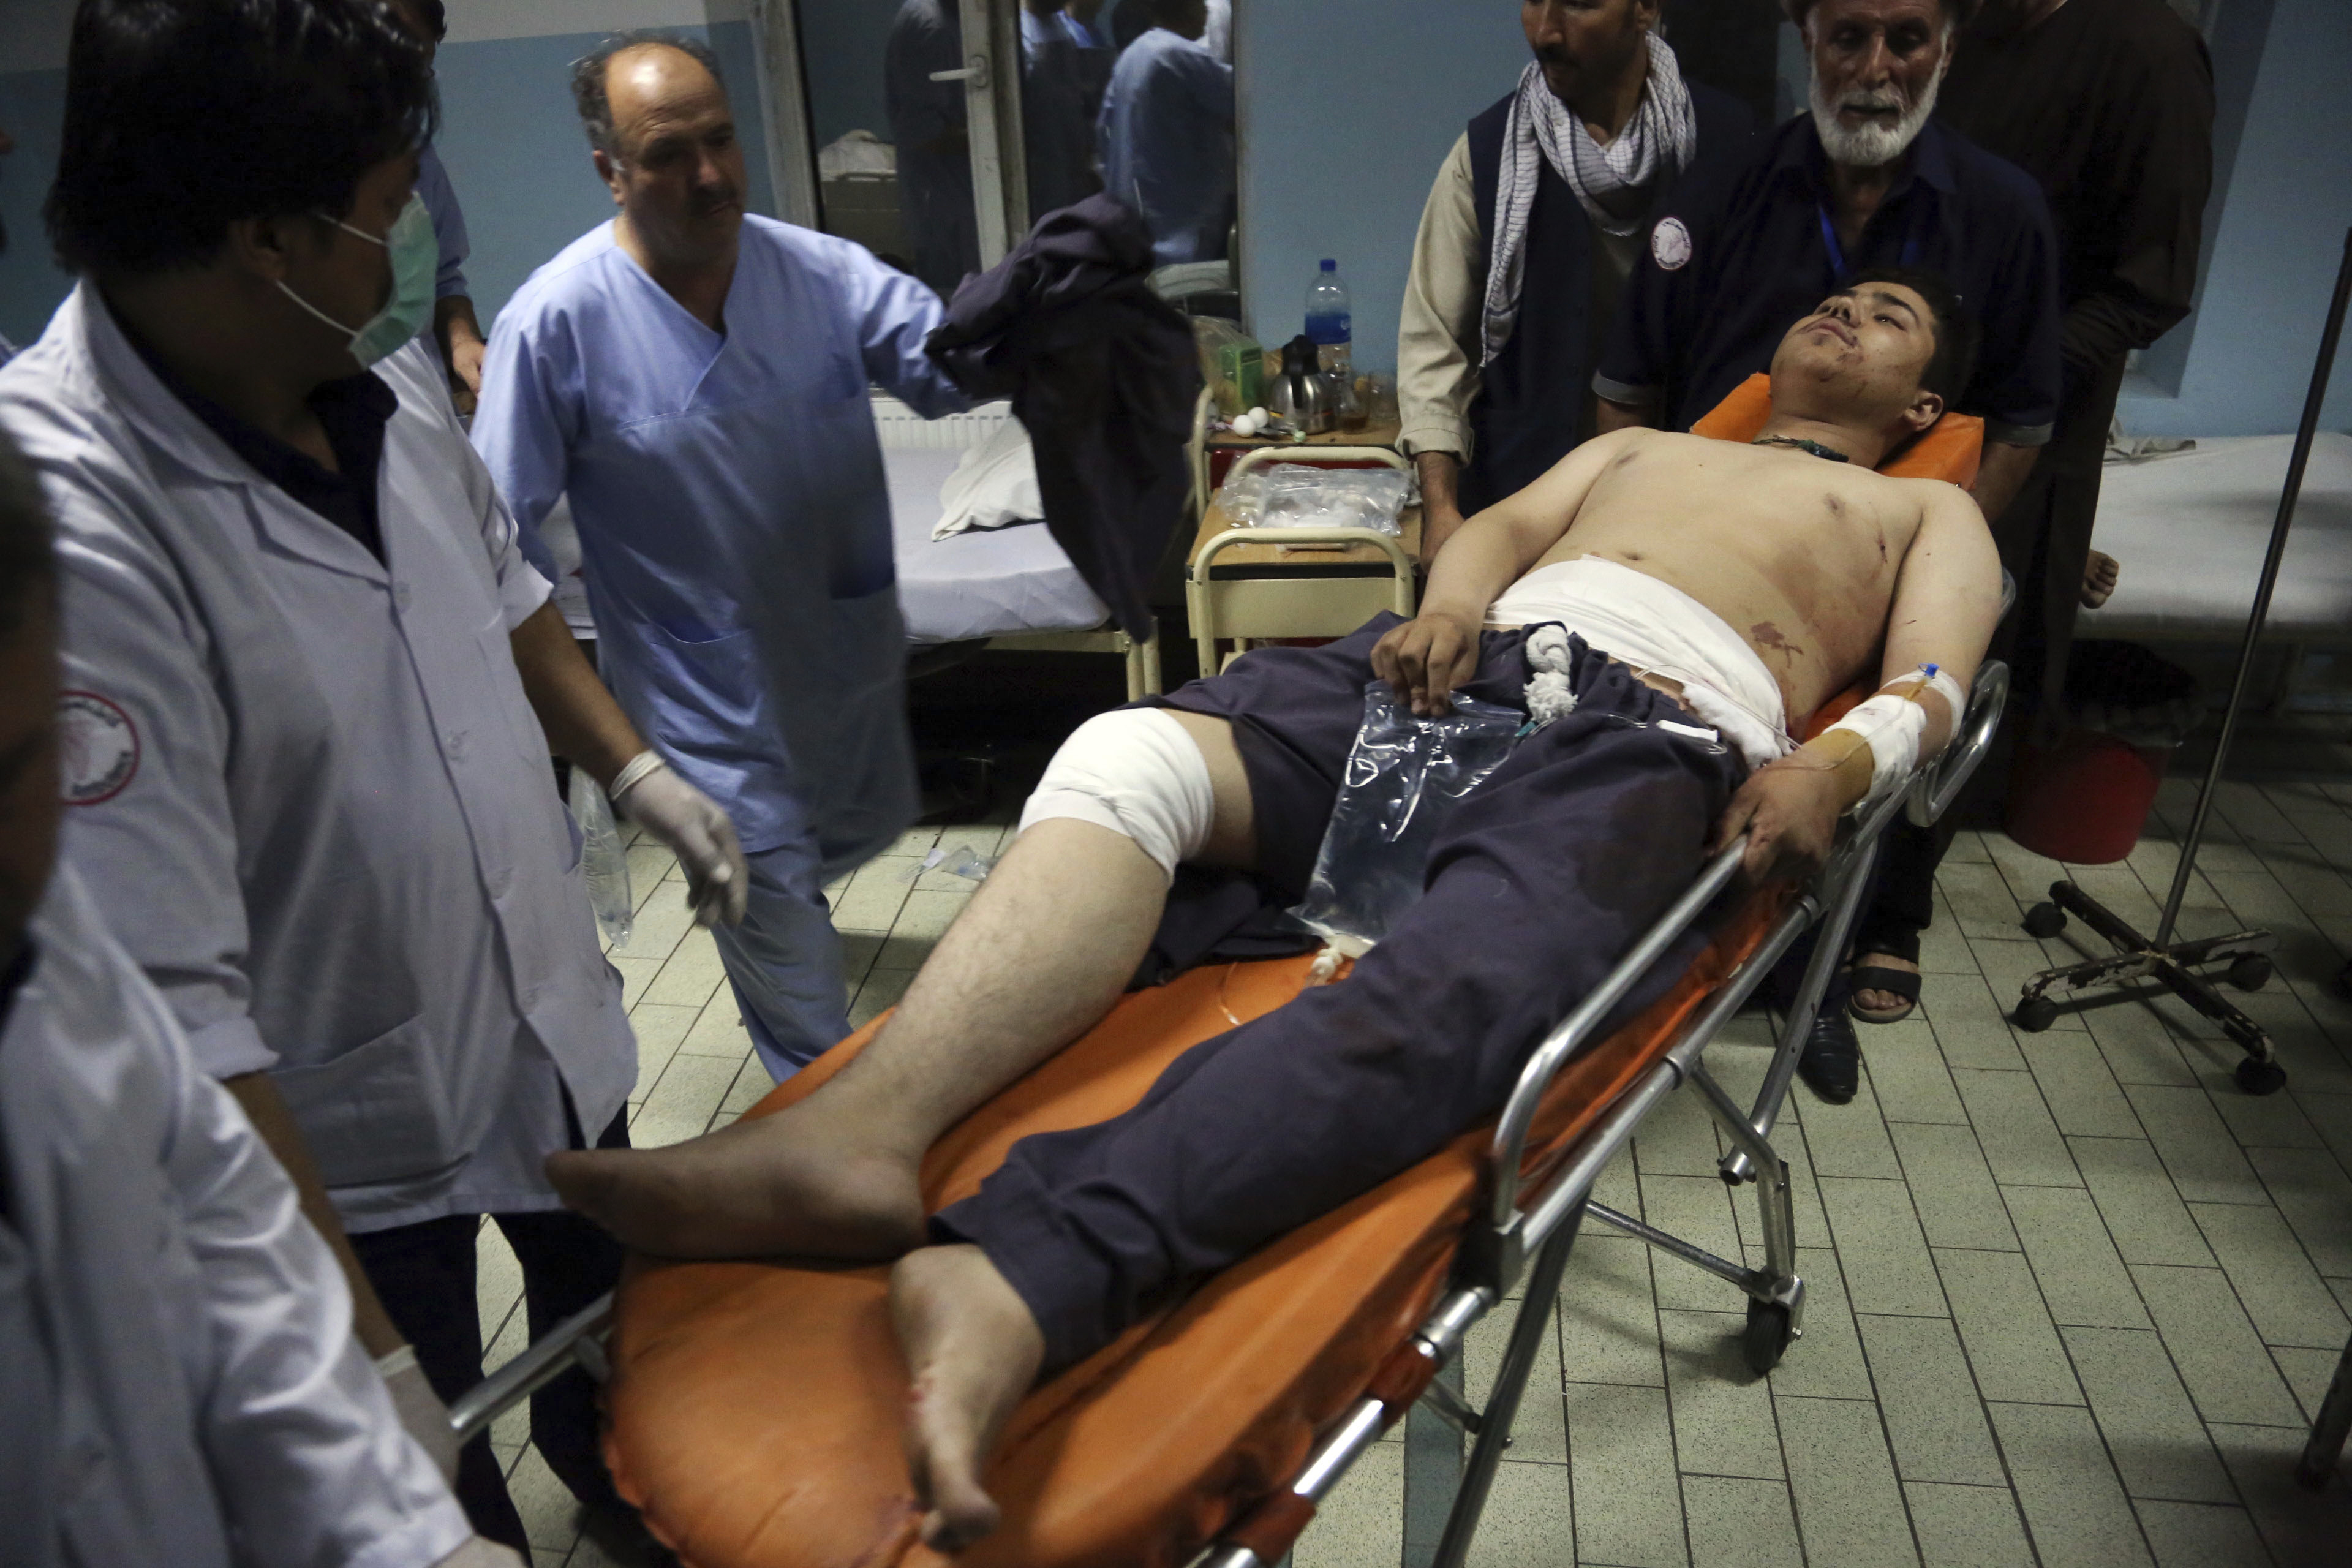 An injured man is brought in to a hospital following a deadly attack in Kabul, Afghanistan, Sept. 5, 2018.